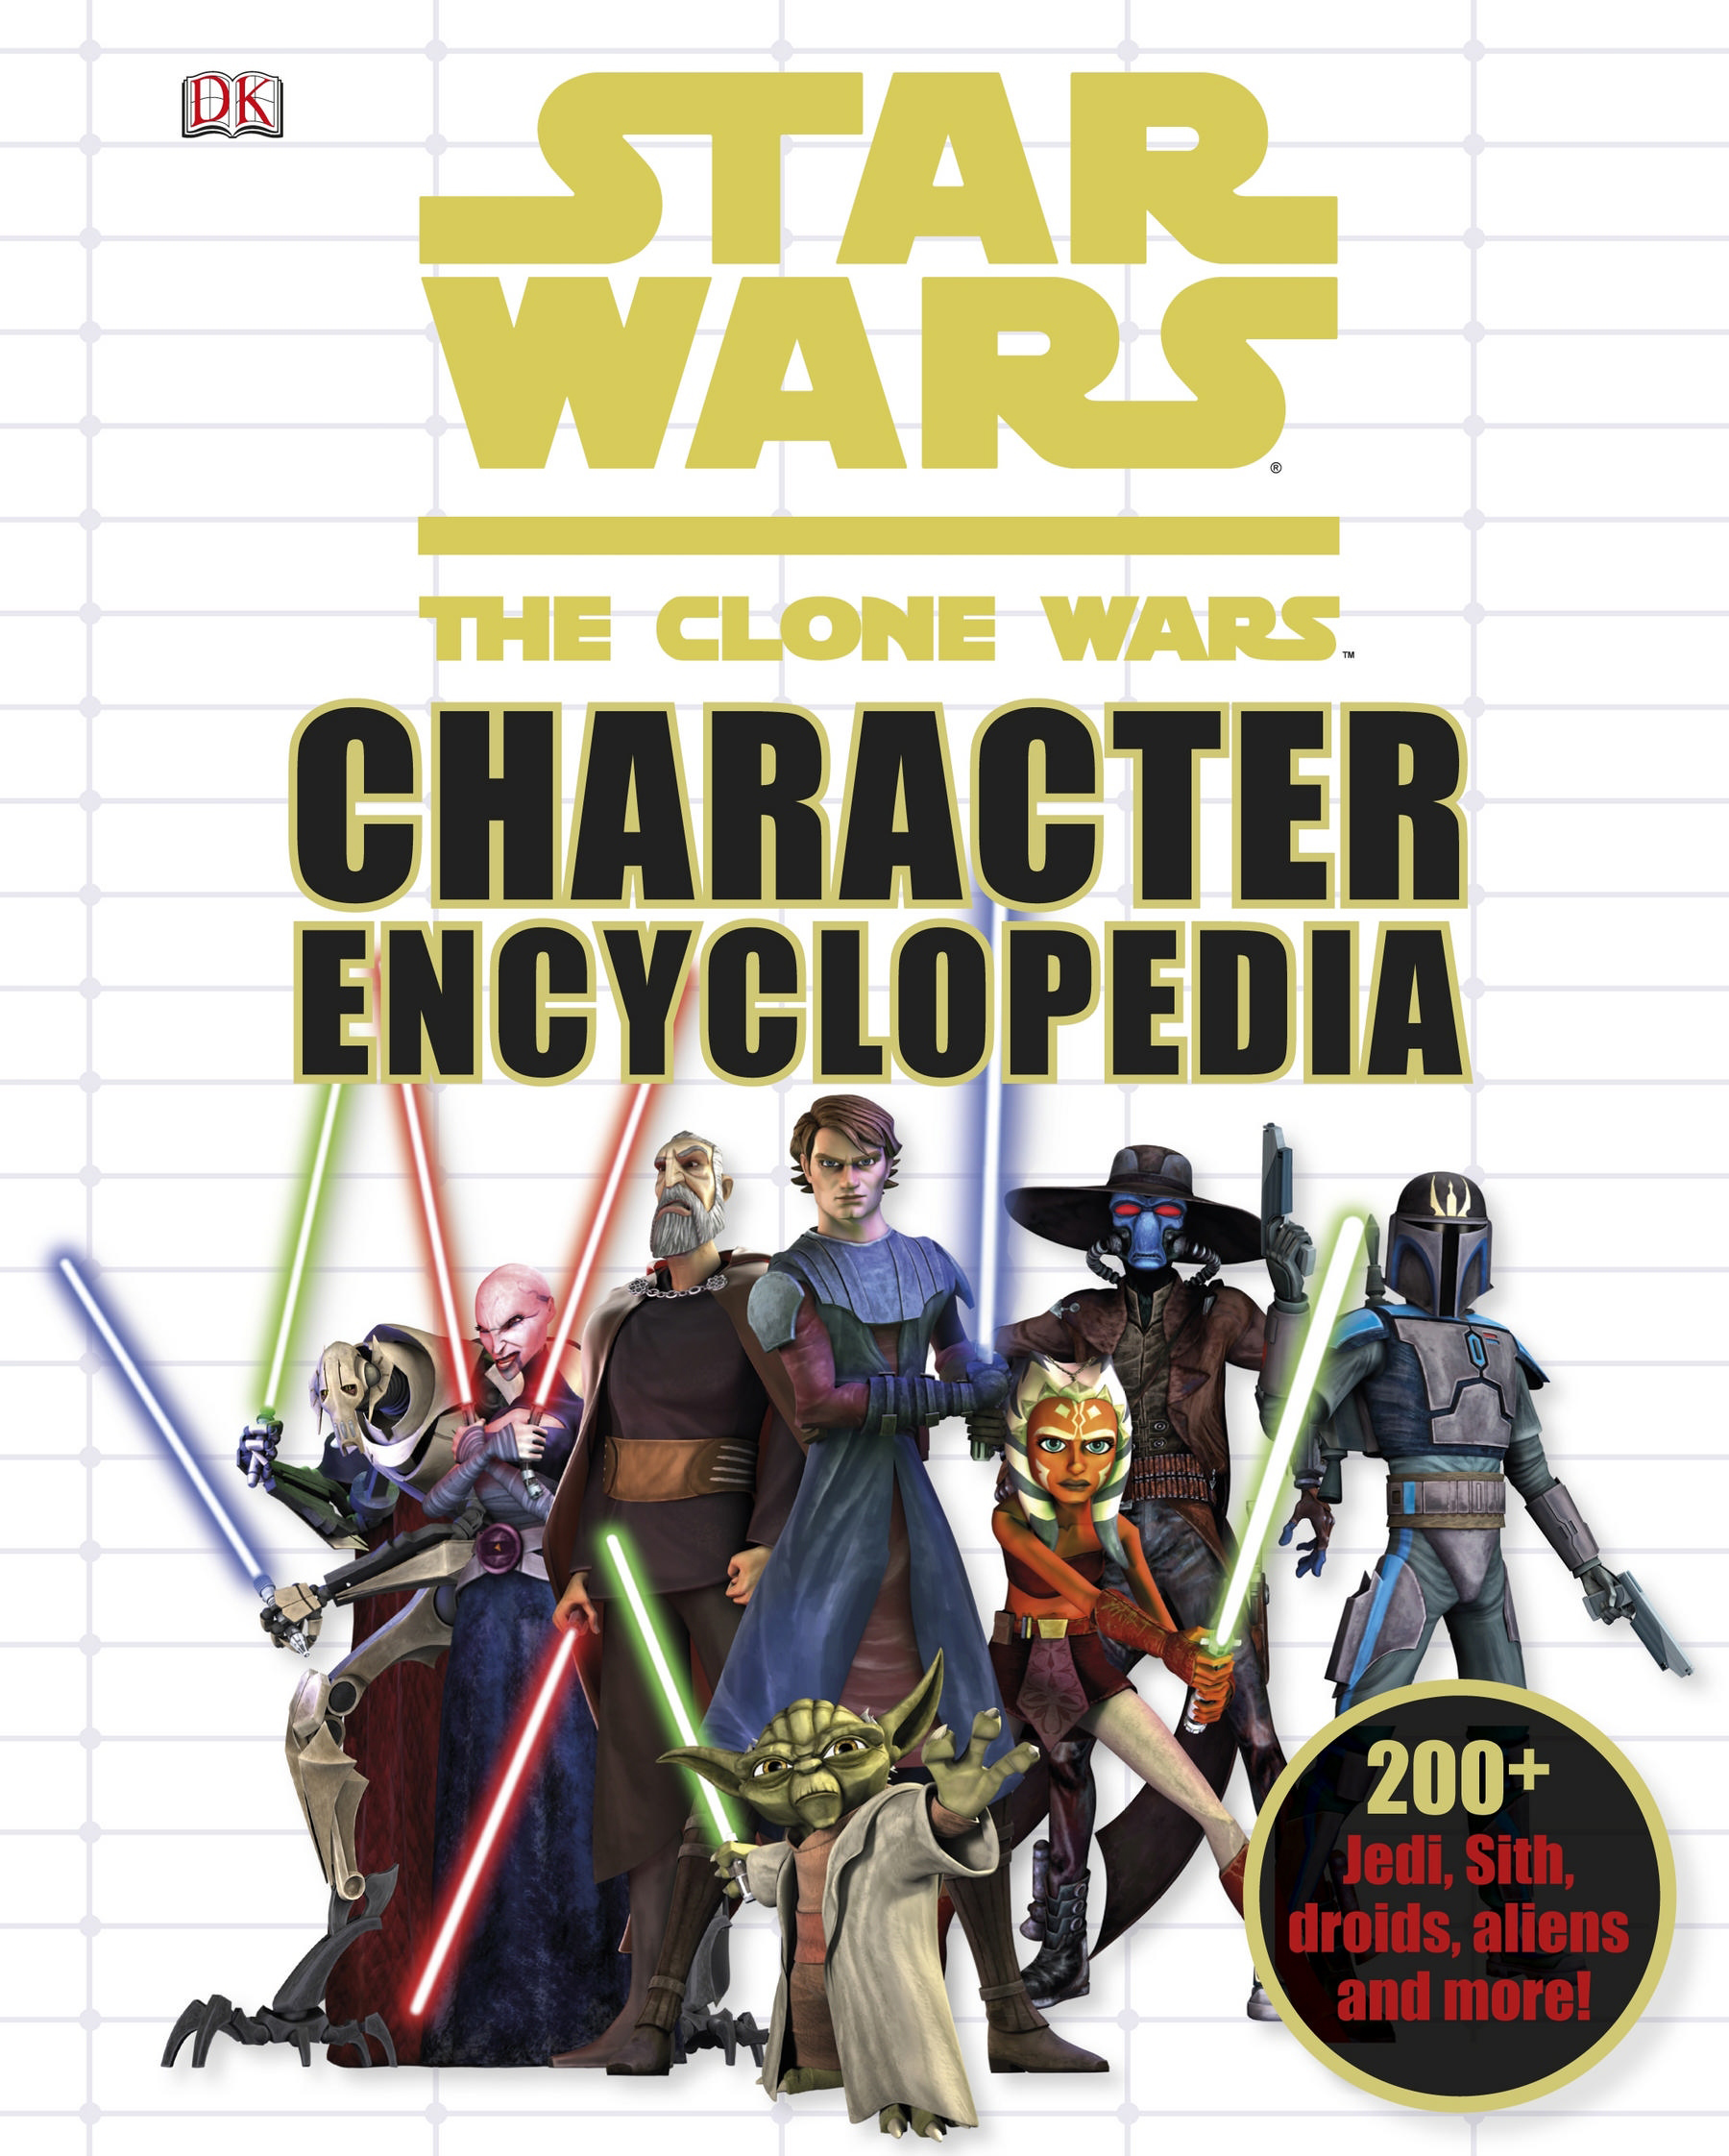 Star Wars Clone Wars Characters Names Star Wars The Clone Wars